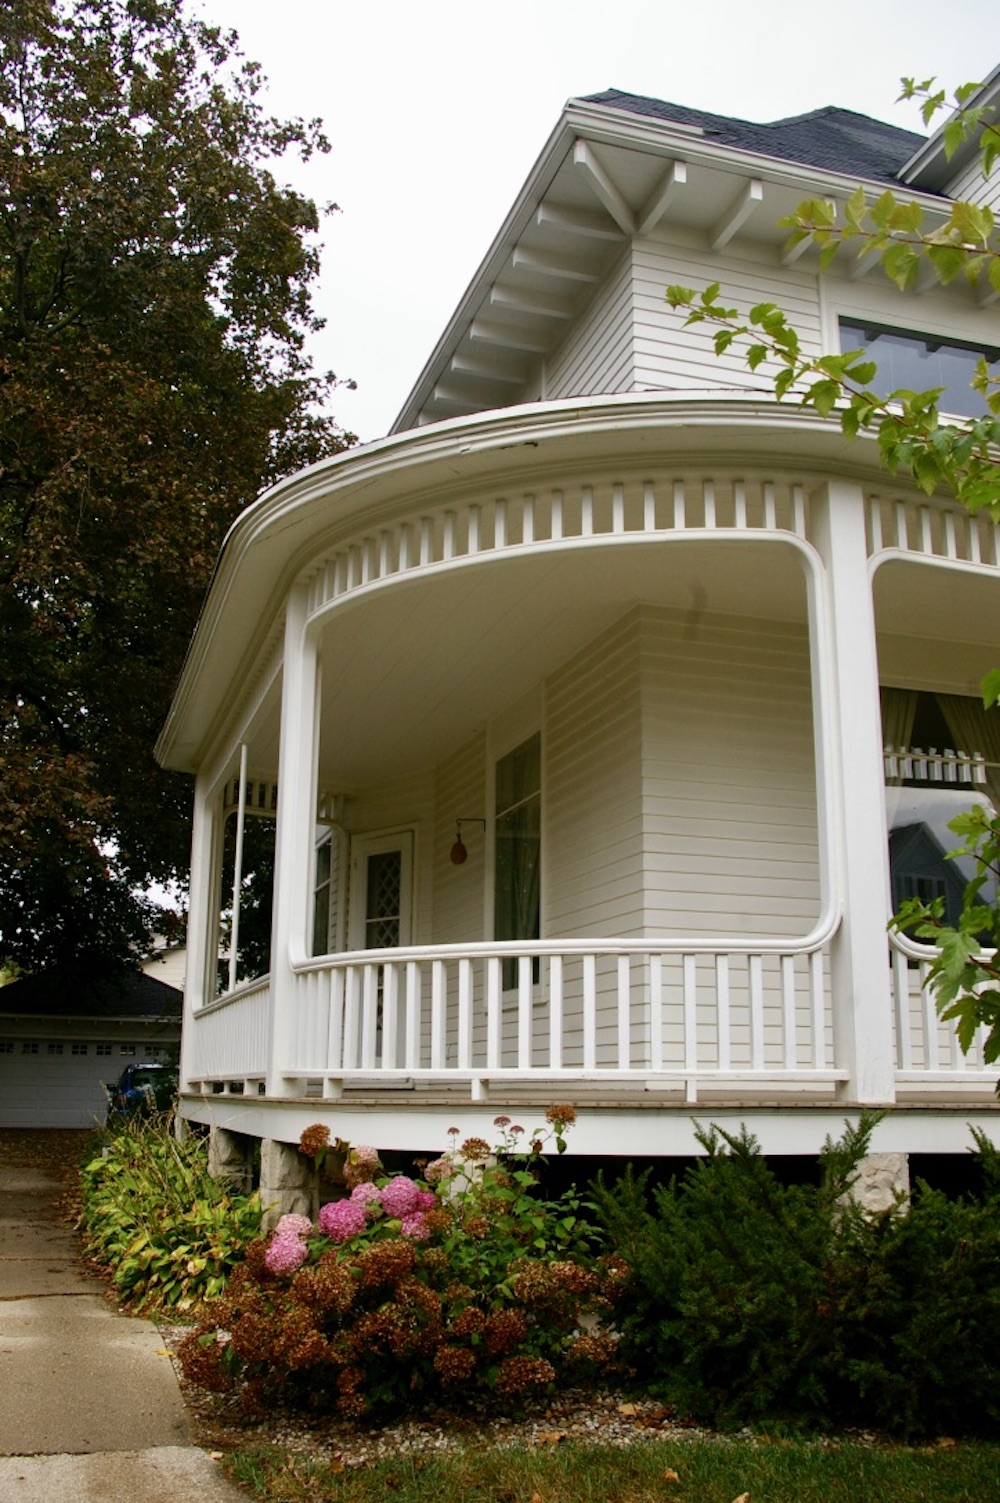 Wraparound porch of a home in the Courthouse Hill Historic District of Janesville, Wisconsin